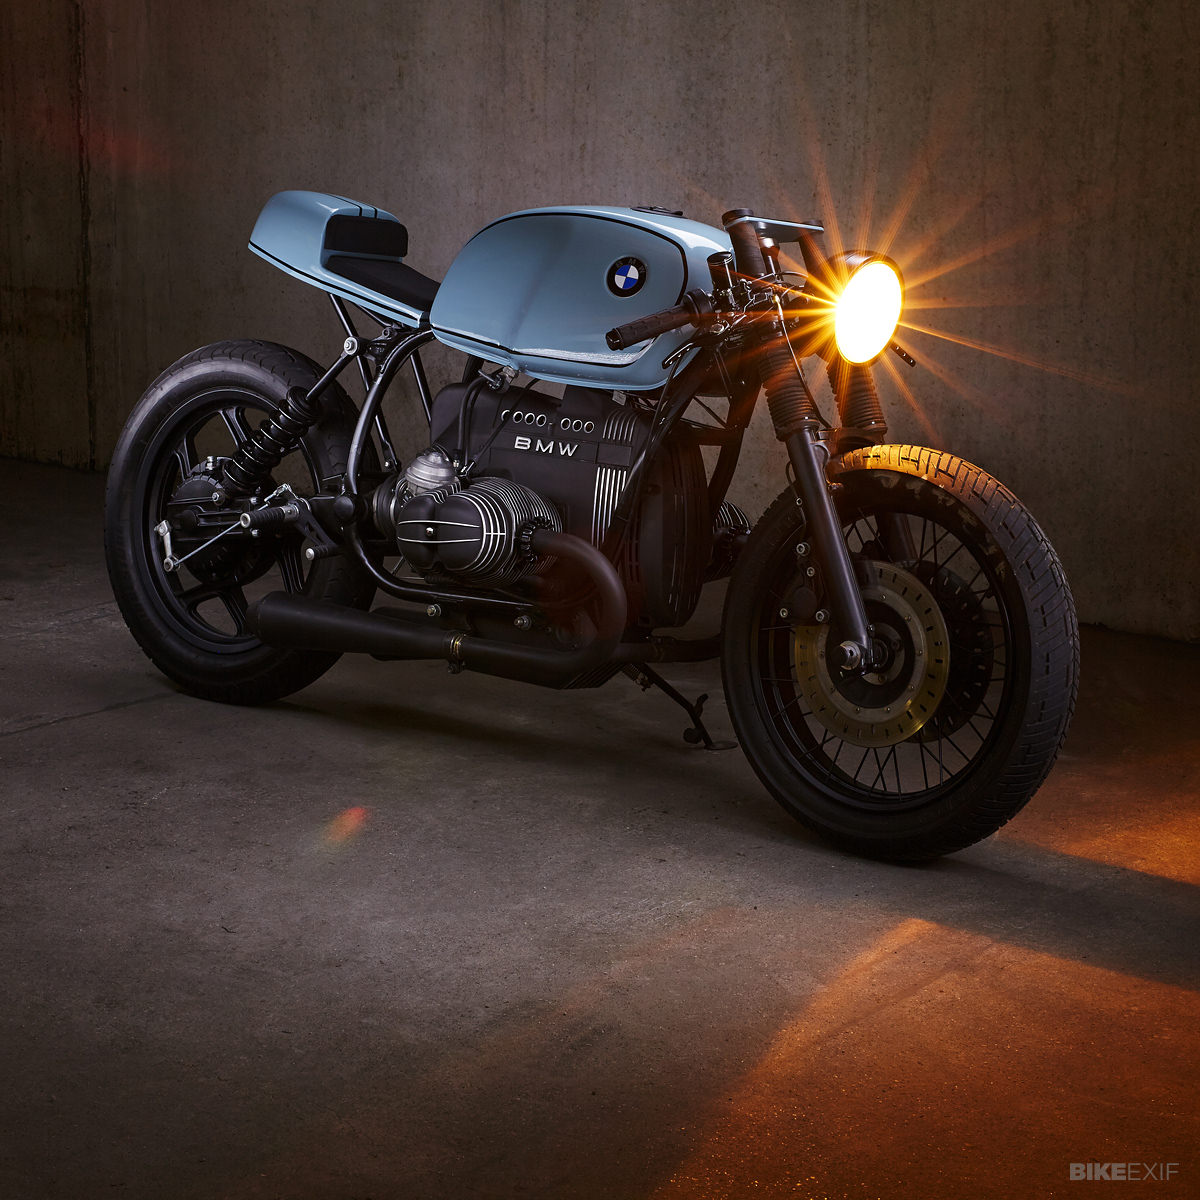 Pure Klasse Diamond Ateliers Bmw R80 Bike Exif Front Wheel Bikes 2 Hardly Anything From The Original Remains 18 Spoked And Floating Brake Discs Are An R100r Theyre Now Hooked Up To A Brembo